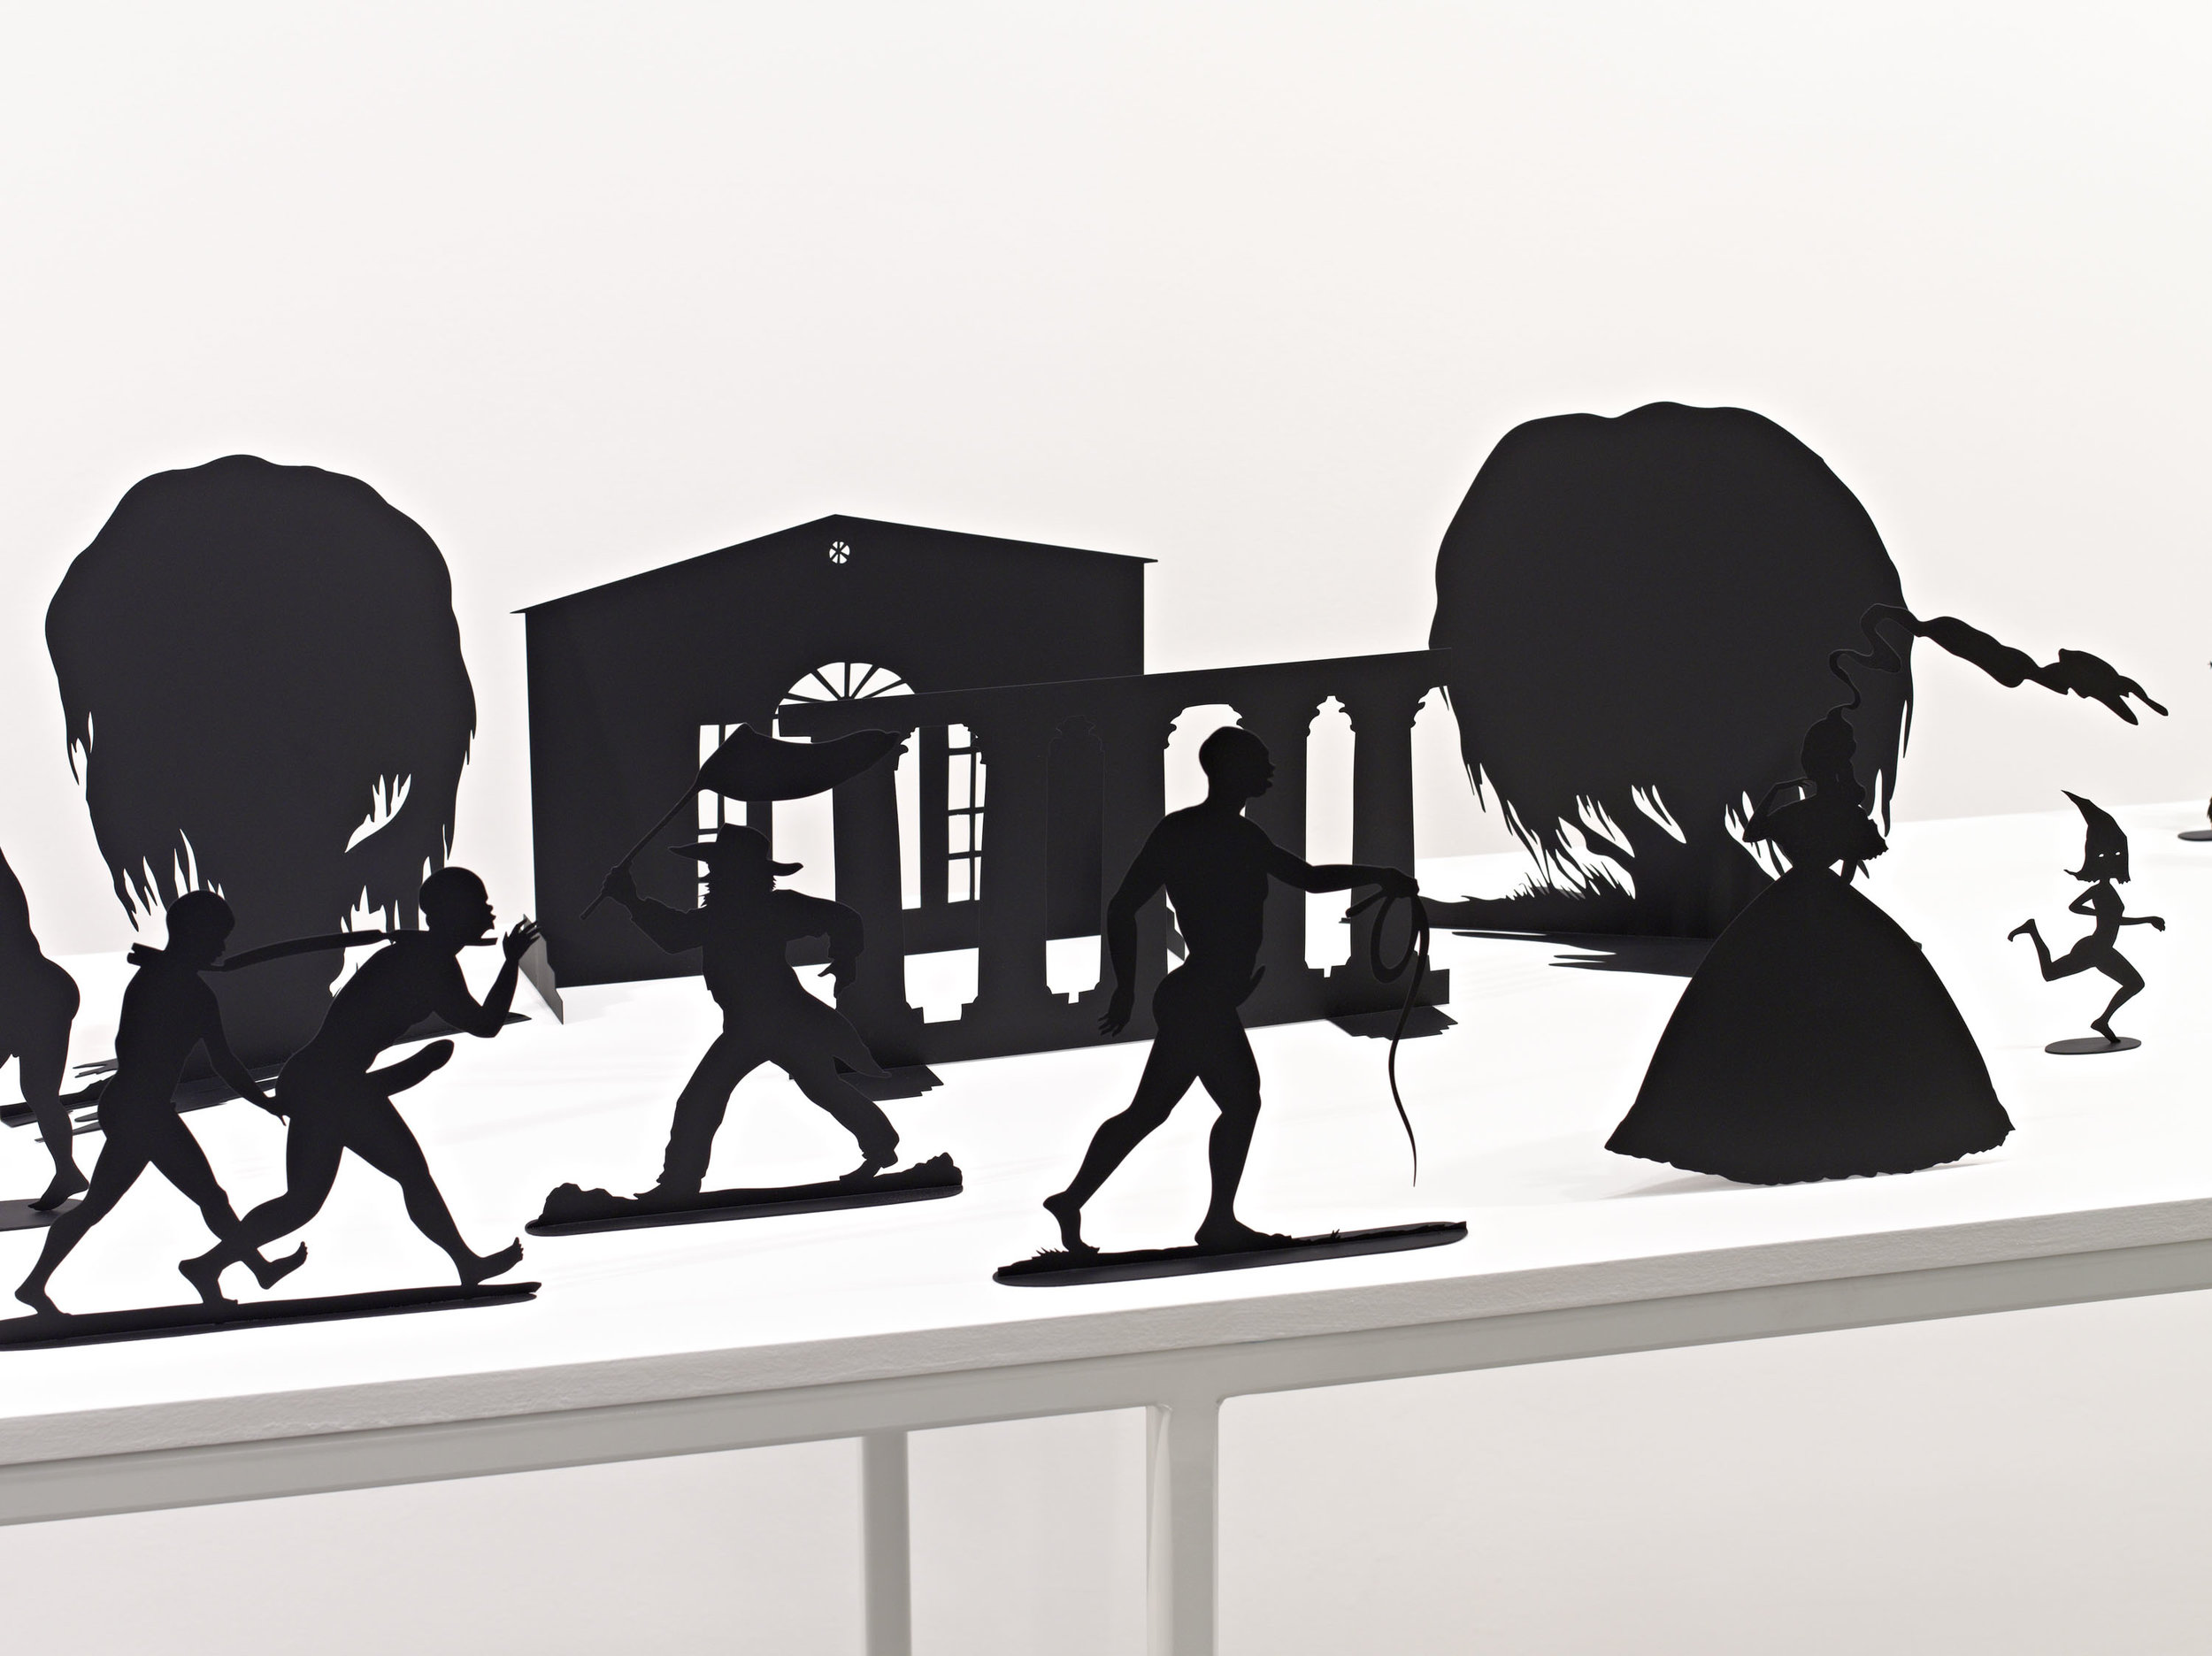 """""""Detail,"""" Burning African Village Play Set with Big House and Lynching, 2006. Painted laser cut steel, 22 parts, dimensions variable © Kara Walker. Images courtesy of Sikkema Jenkin & Co., New York"""